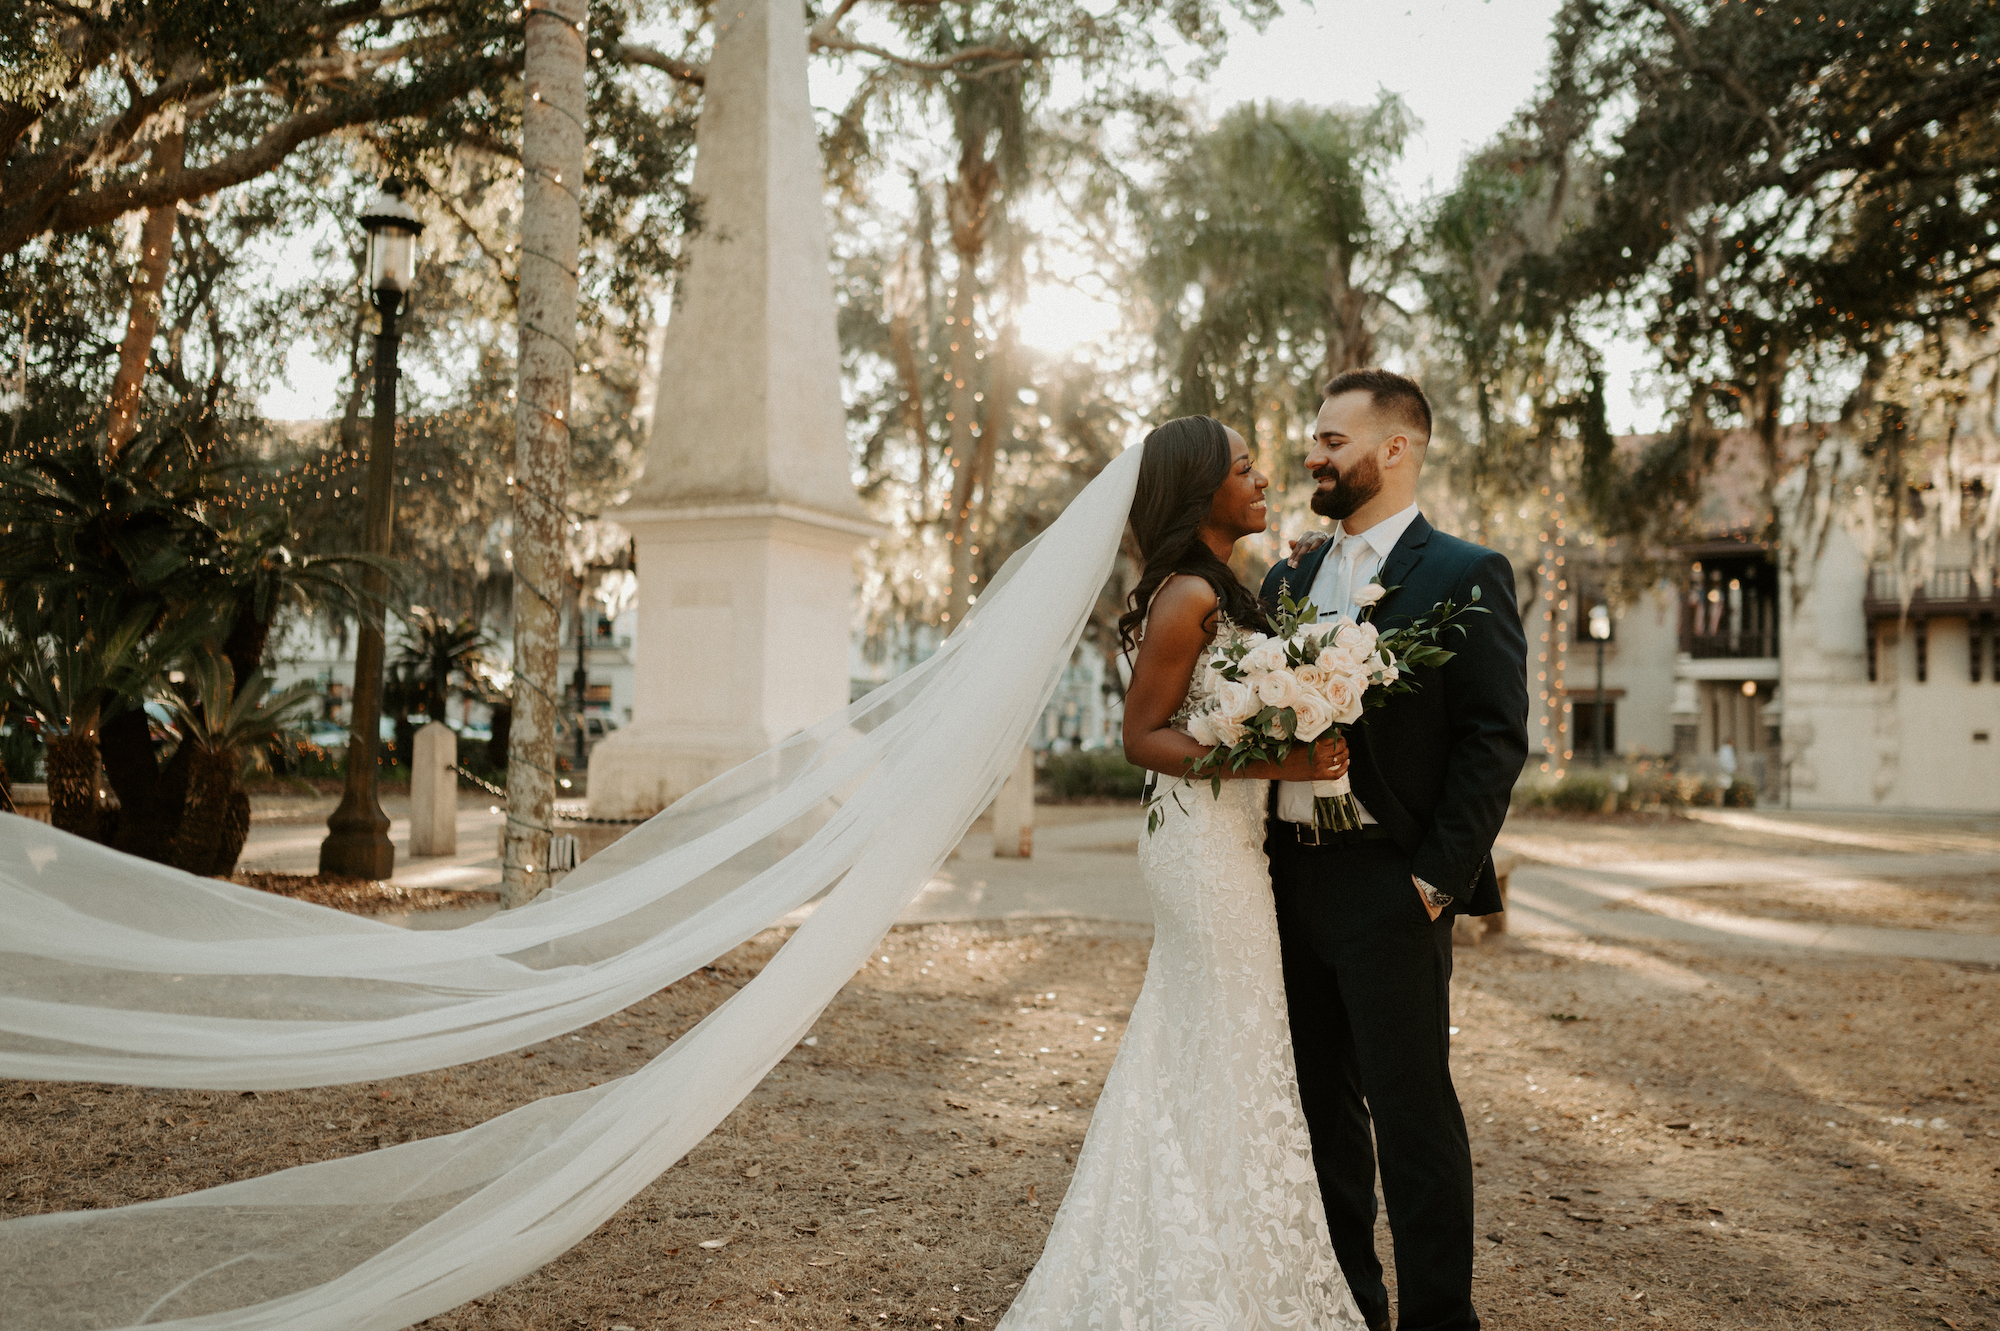 Wedding in St. Augustine Florida by Lunic Visuals